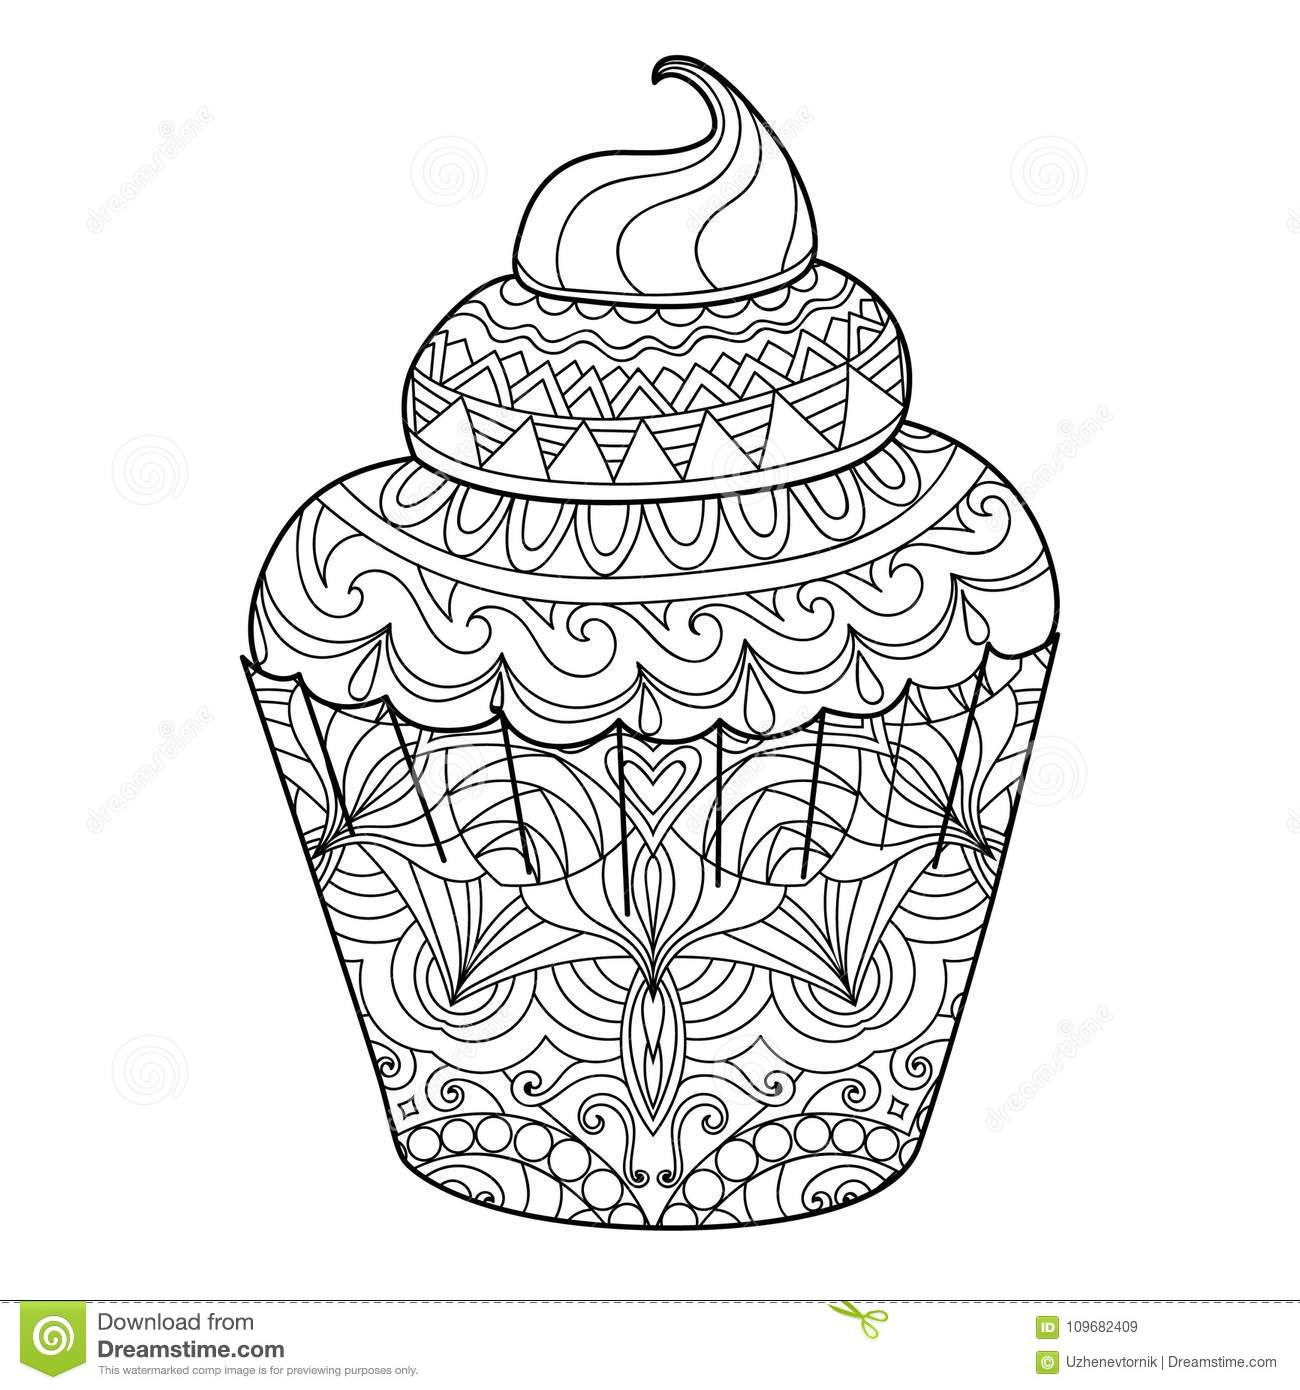 - Cupcake For Coloring Book For Adults Stock Vector - Illustration